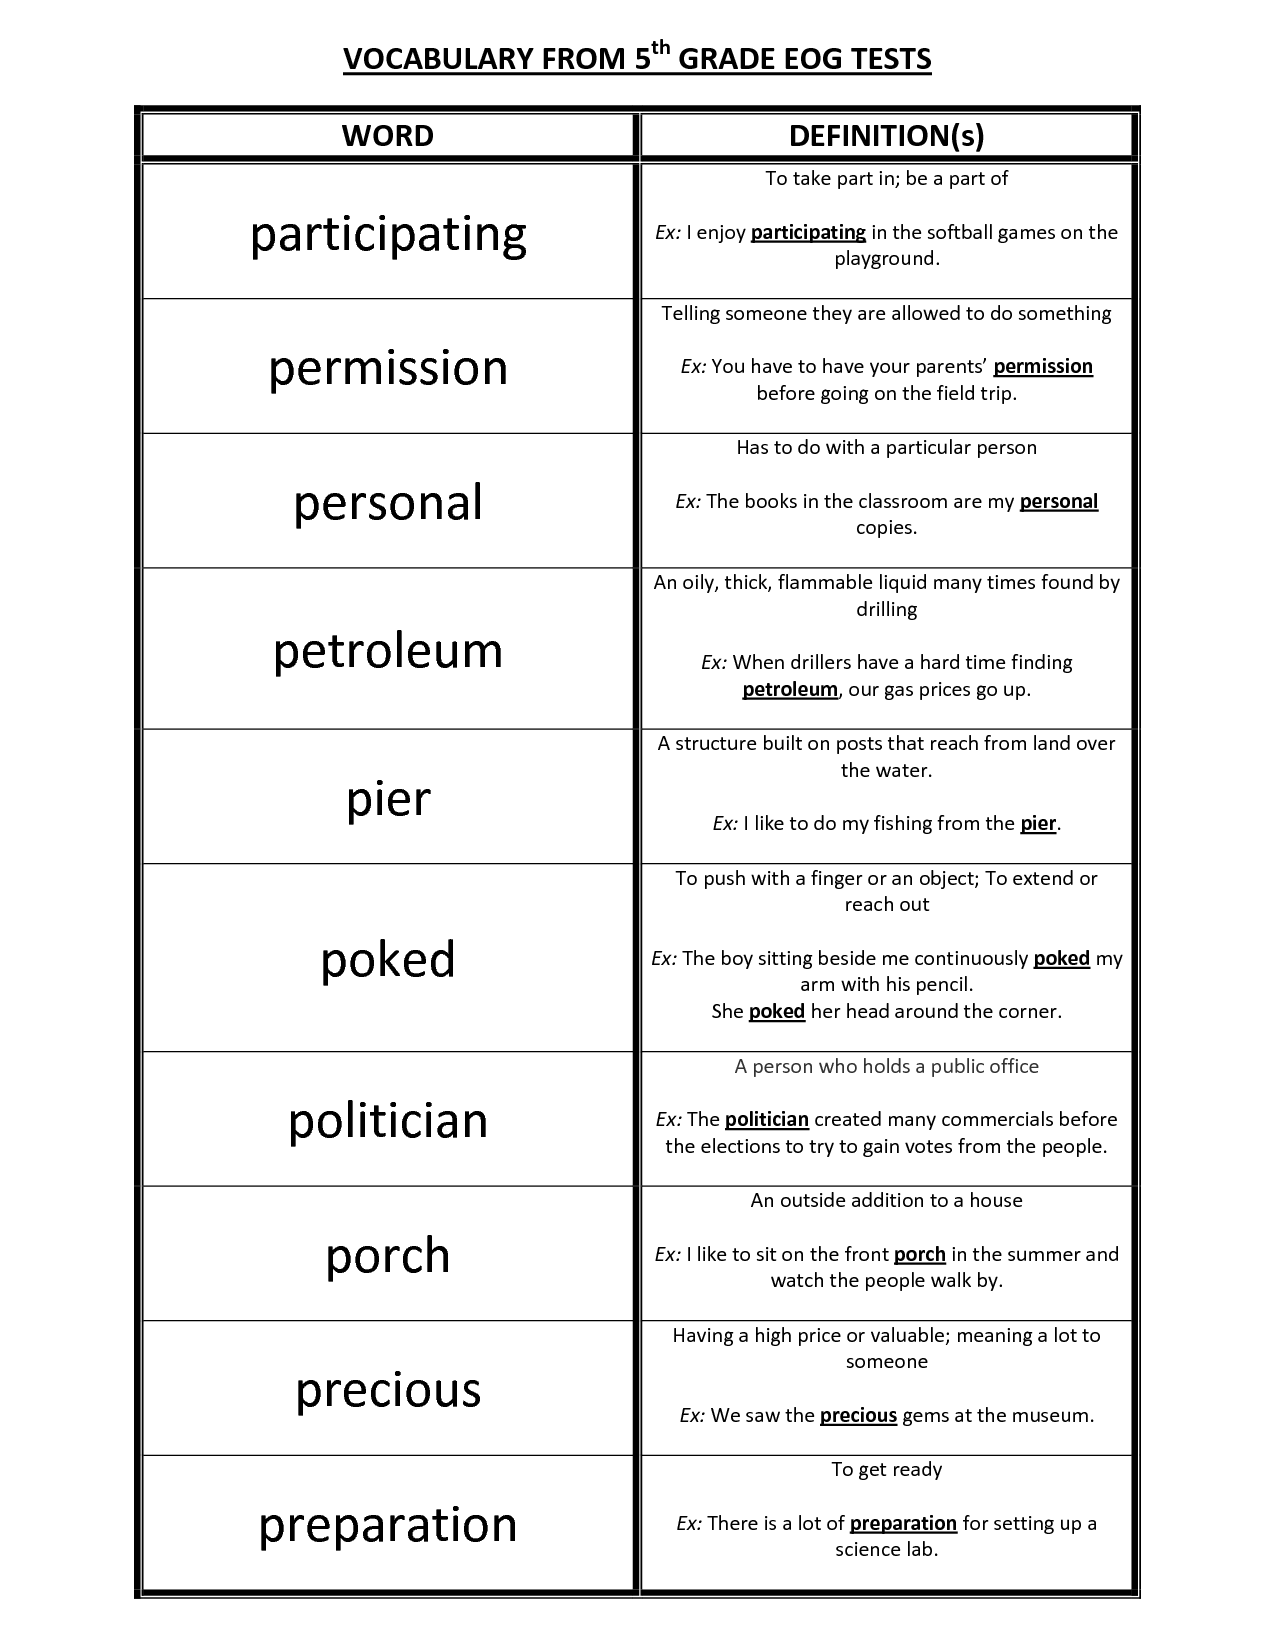 5th Grade Vocabulary Words Worksheet Printable